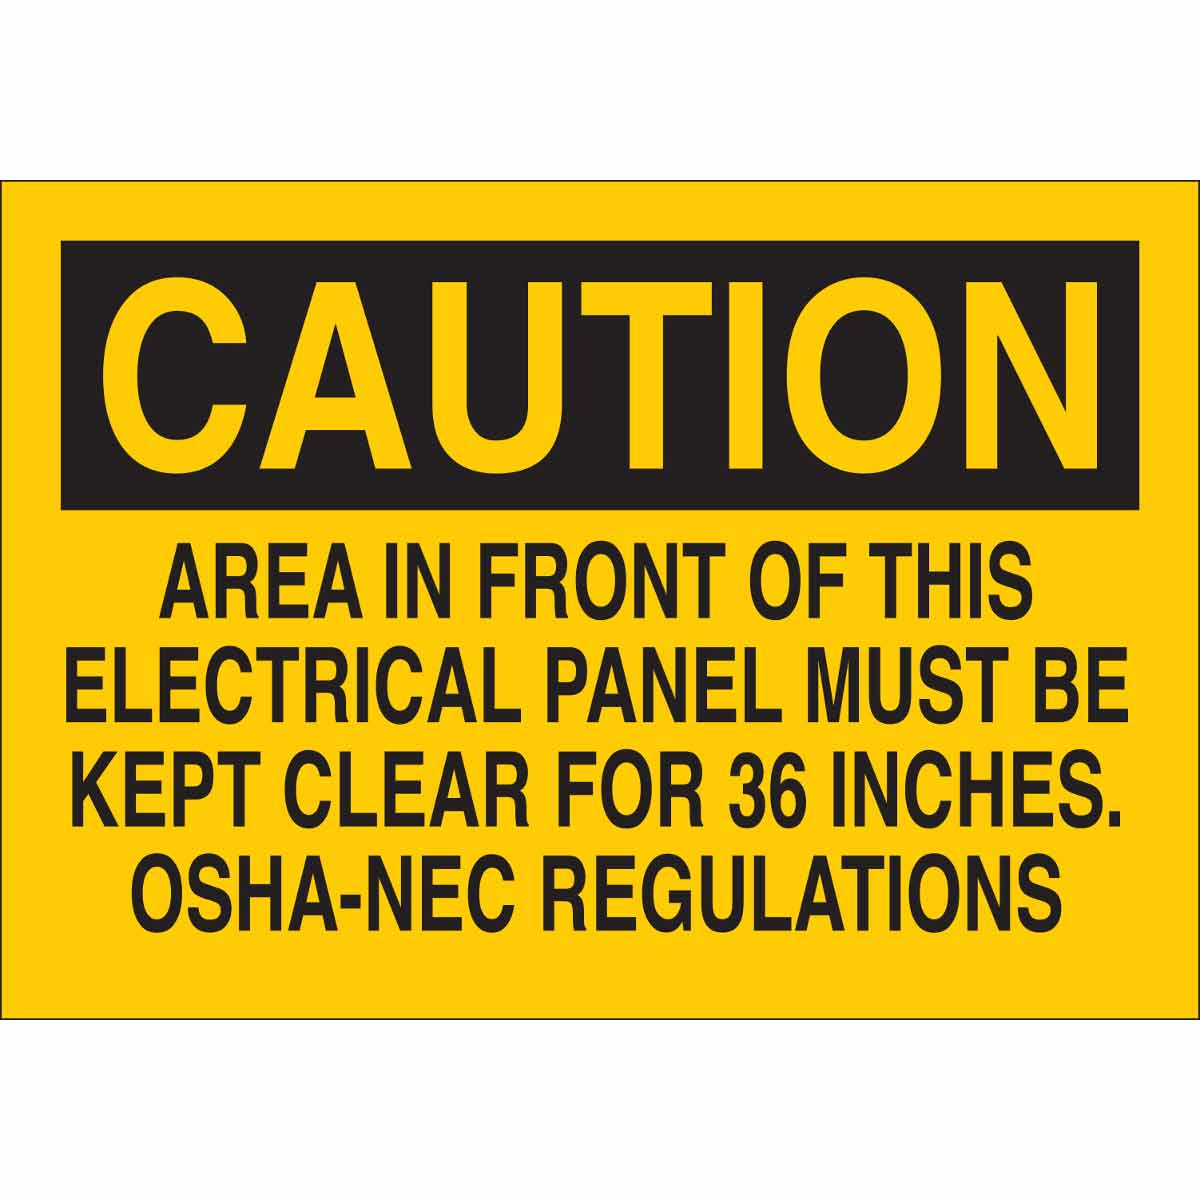 Brady® 84827 Rectangle Electrical Hazard Sign, CAUTION, 7 in H x 10 in W, Black on Yellow, B-302 Polyester, Surface Mounting